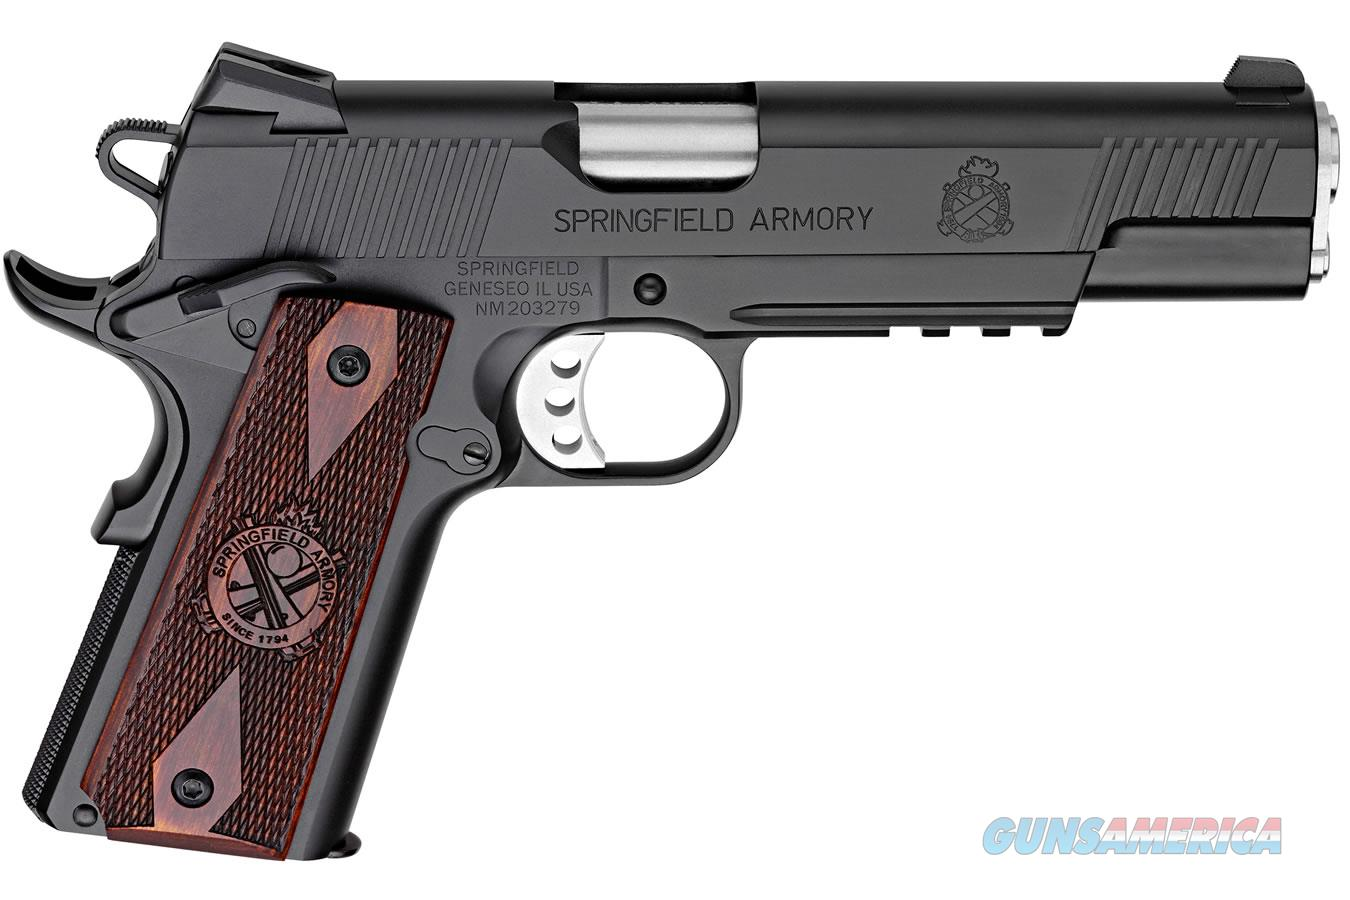 Springfield 1911-A1 Lightweight Loaded Operated .45 ACP PX9116L   Guns > Pistols > Springfield Armory Pistols > 1911 Type